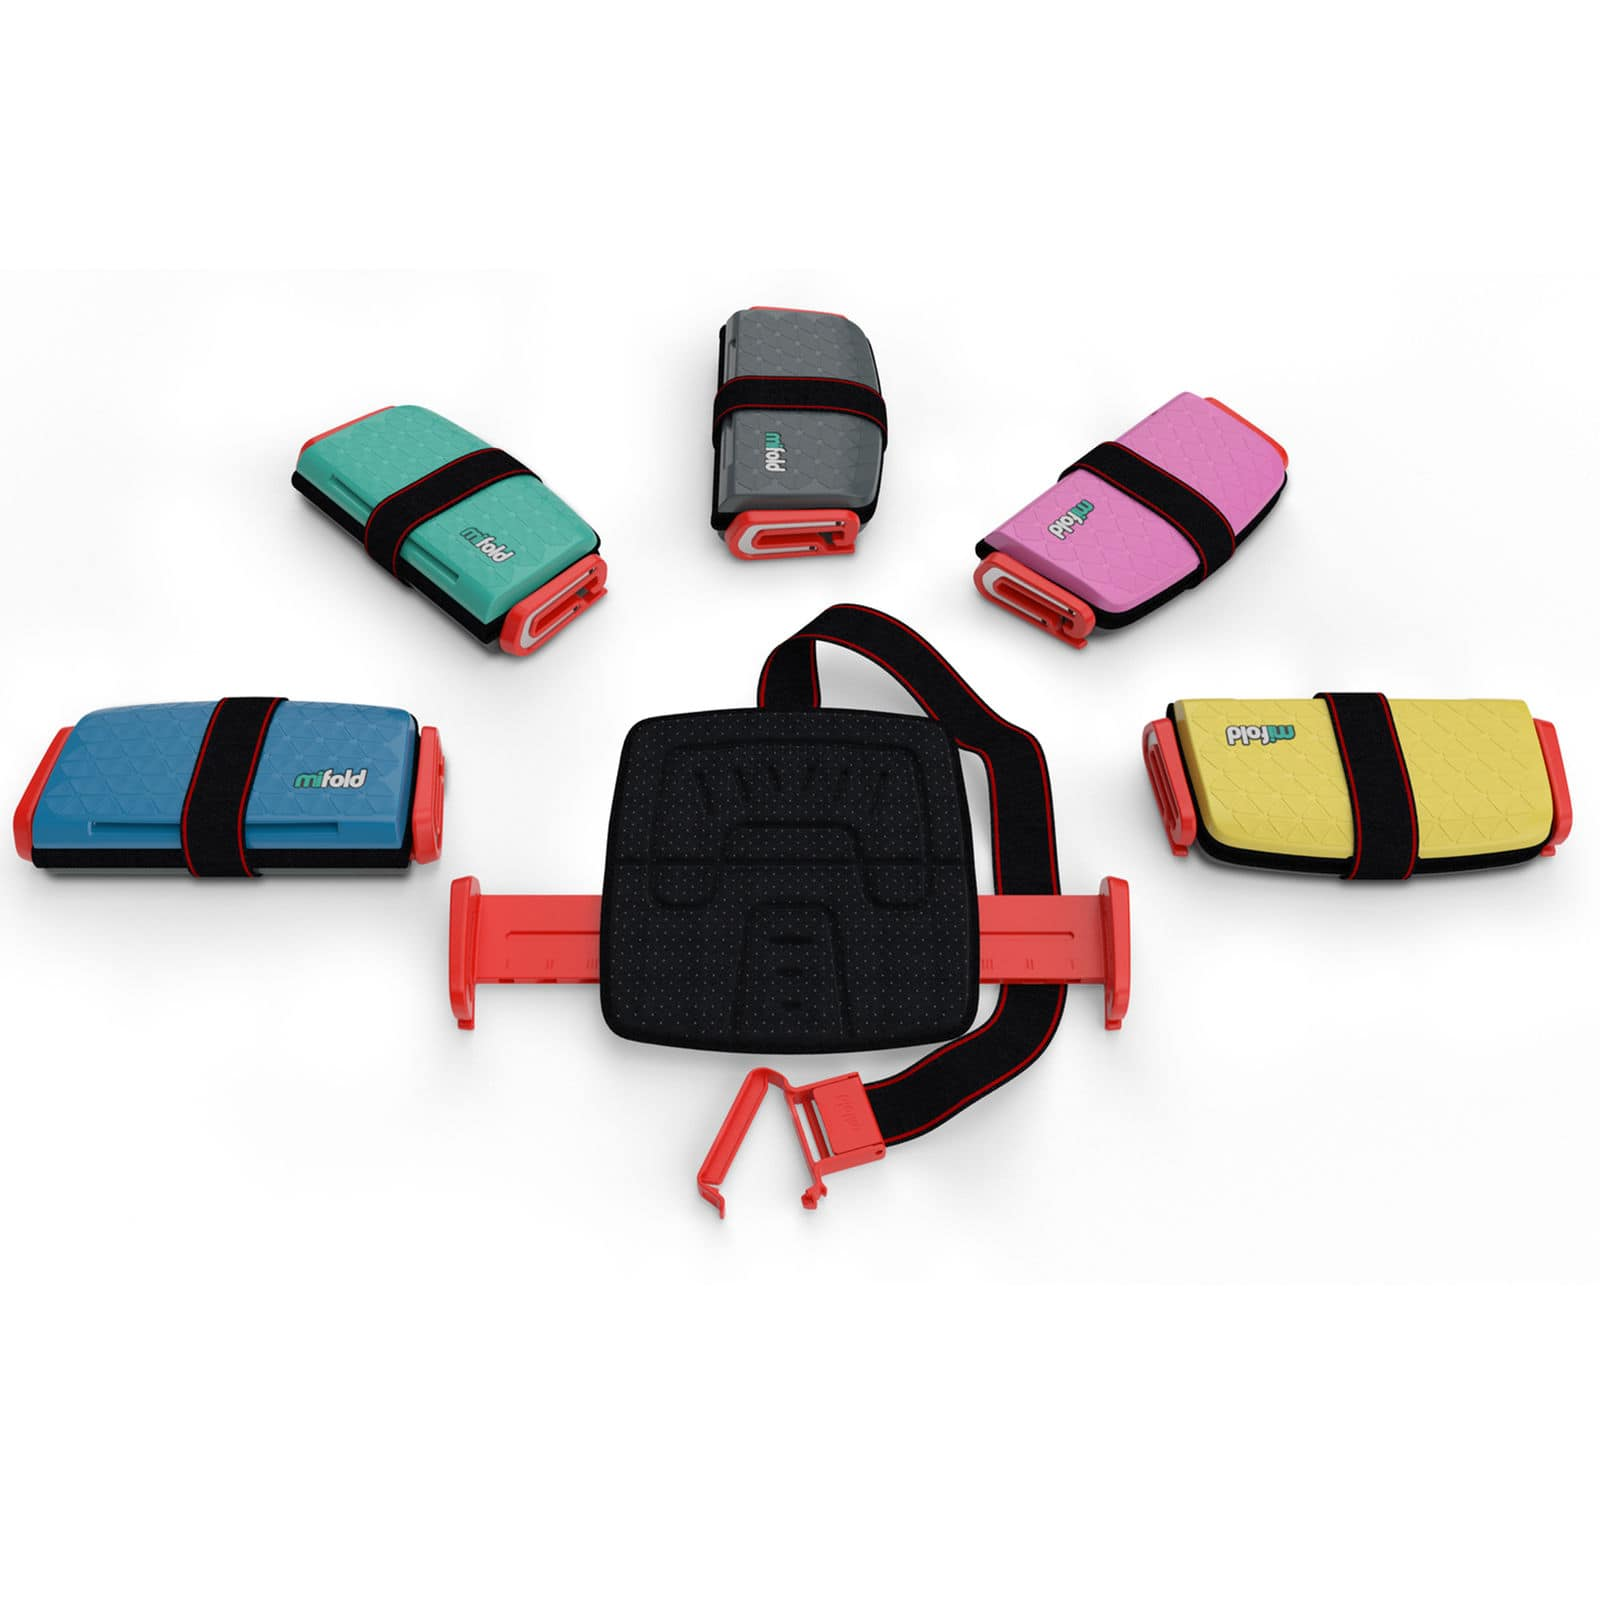 2-Pack of Mifold Grab-and-Go Car Booster Seat (Various color options) $65 + Free shipping